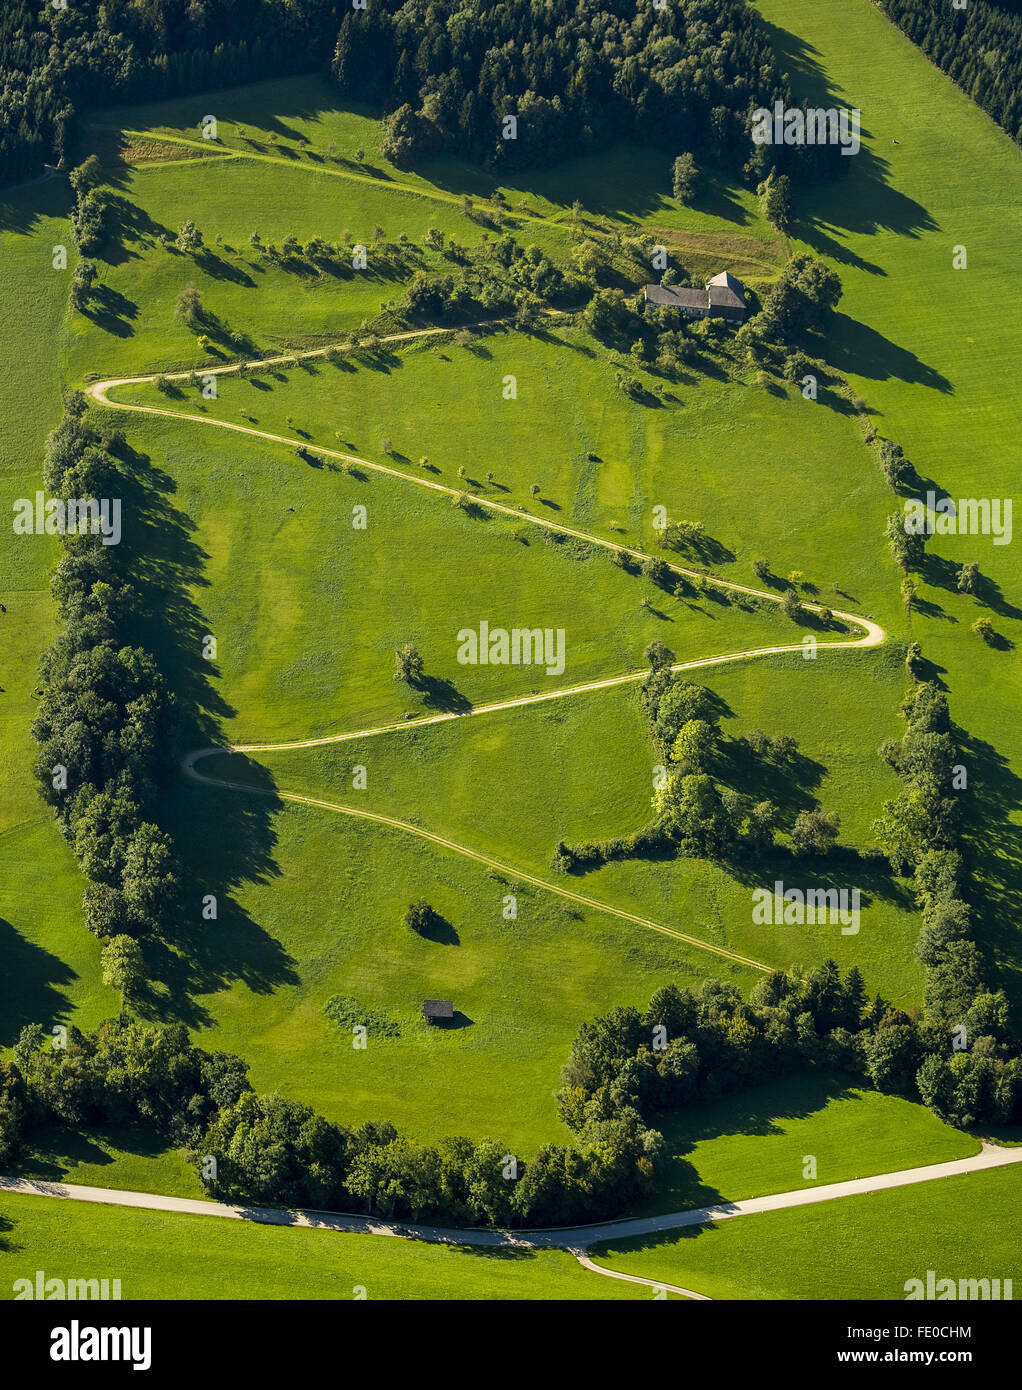 Aerial view, serpentine in the foothills, foothills with green meadows, Waidhofen an der Ybbs, Lower Austria, Austria, - Stock Image